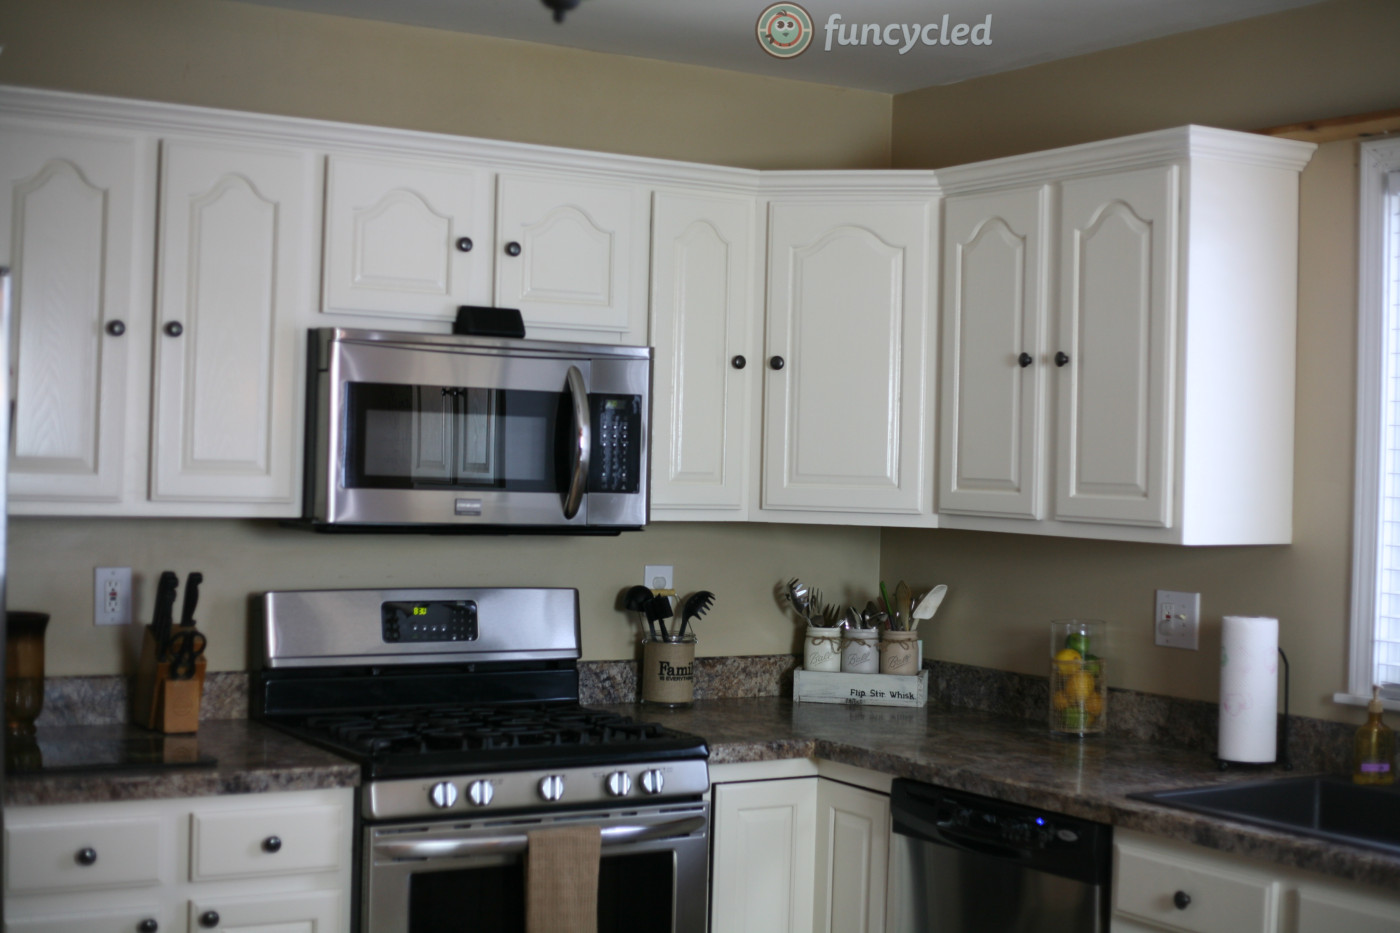 oak kitchen cabinets painted navajo white - funcycled